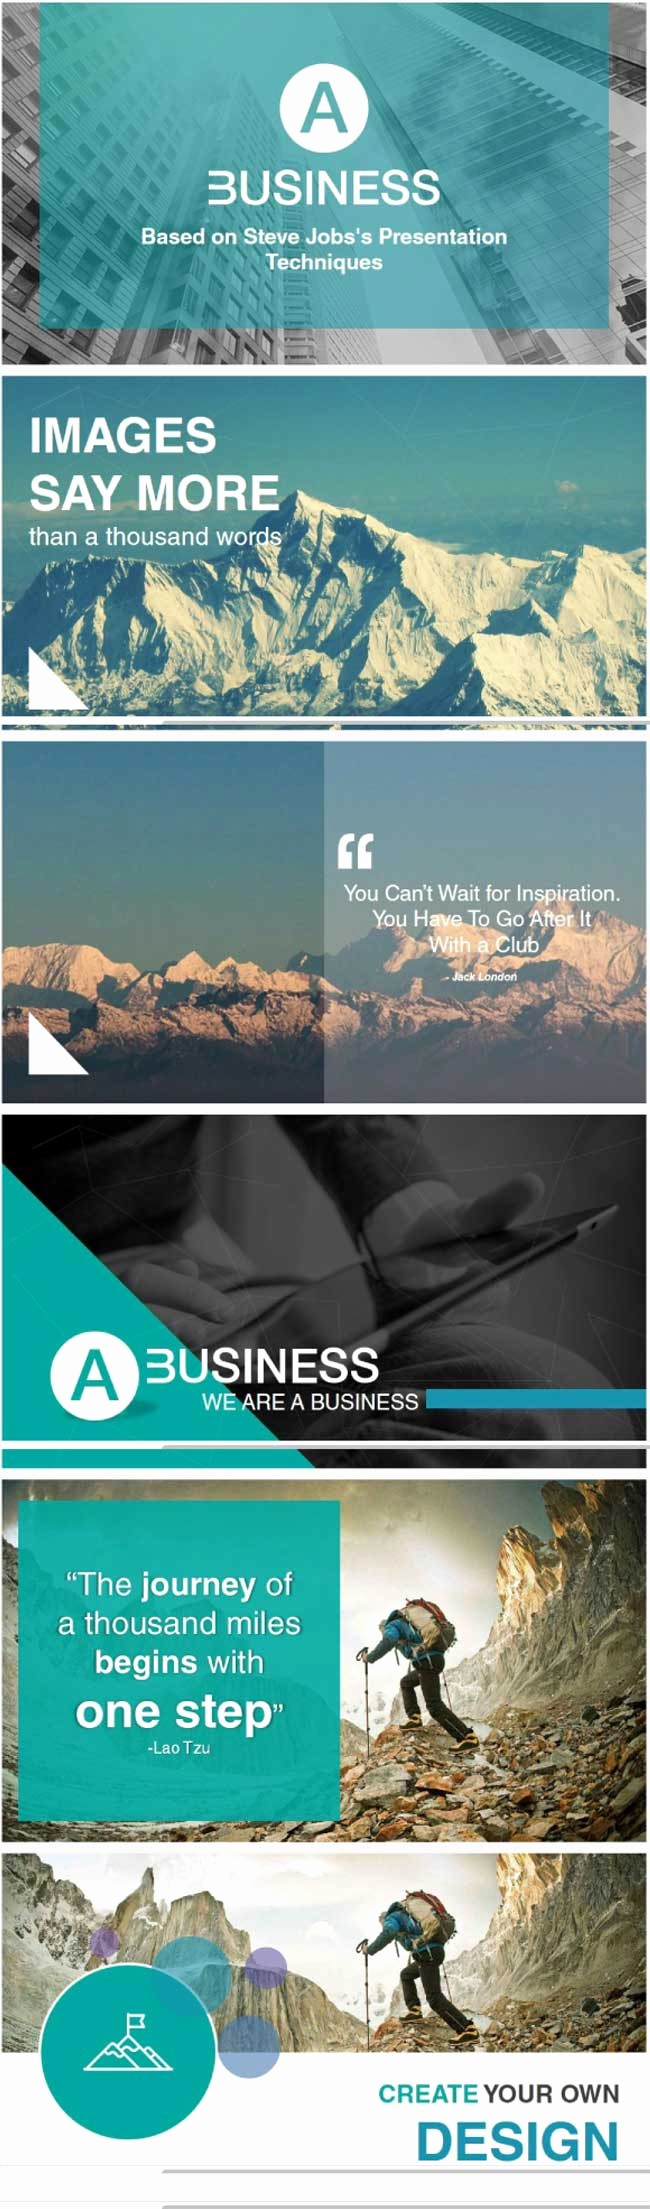 Ppt Templates for Business Presentation New 35 Amazing Powerpoint Templates 2017 Designmaz